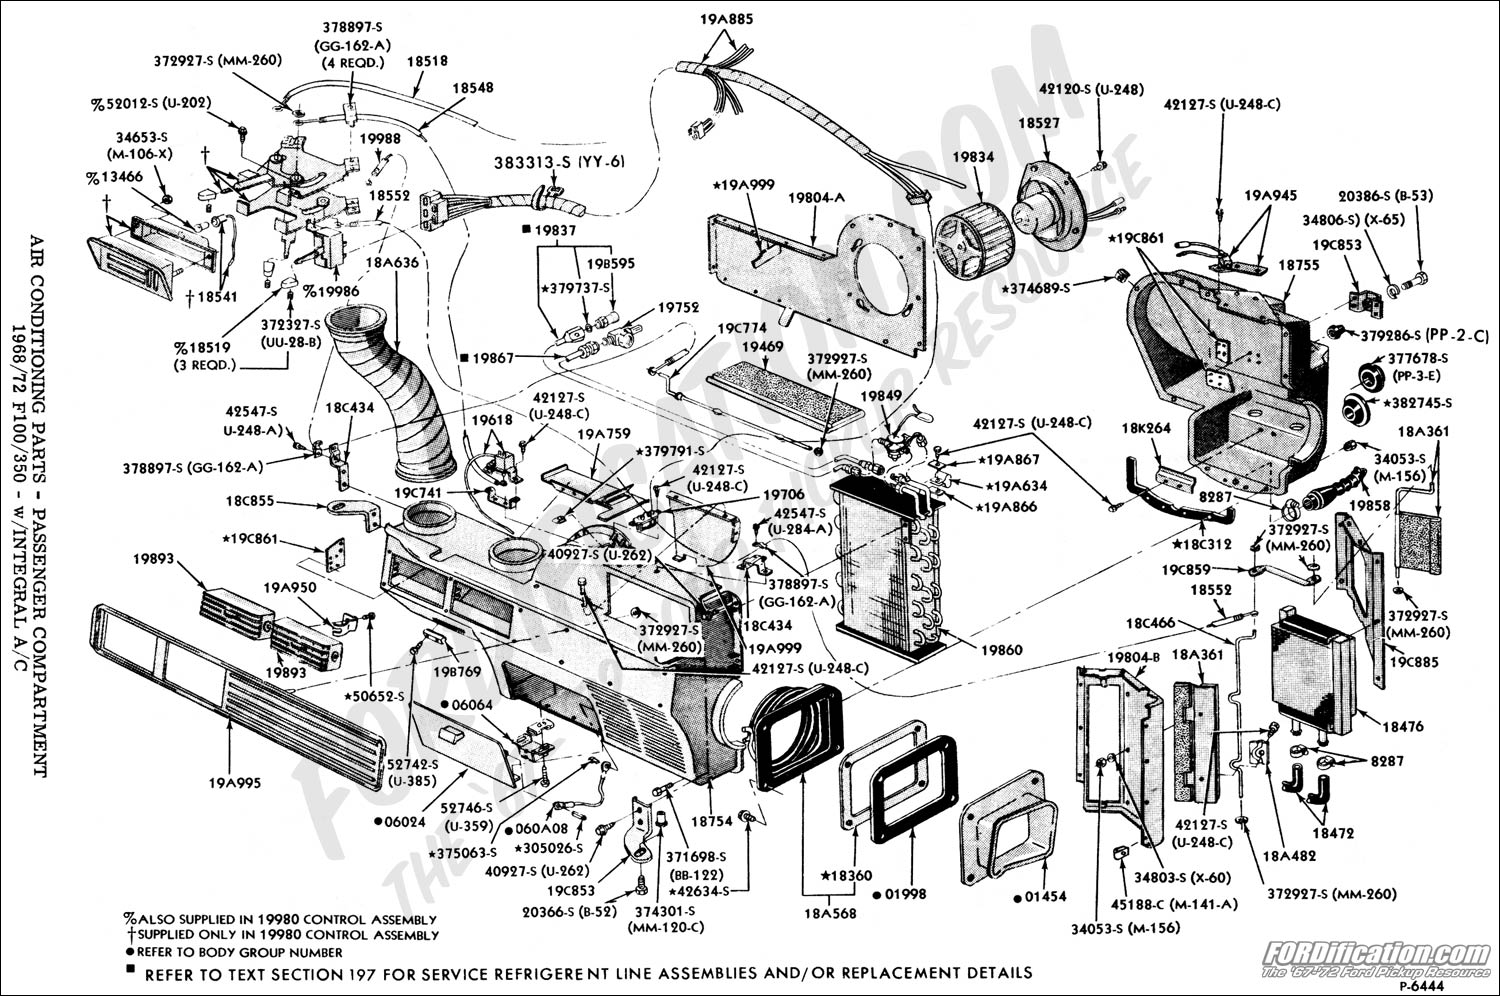 Ford Escape Exhaust Diagram on 2011 subaru outback fuse diagram